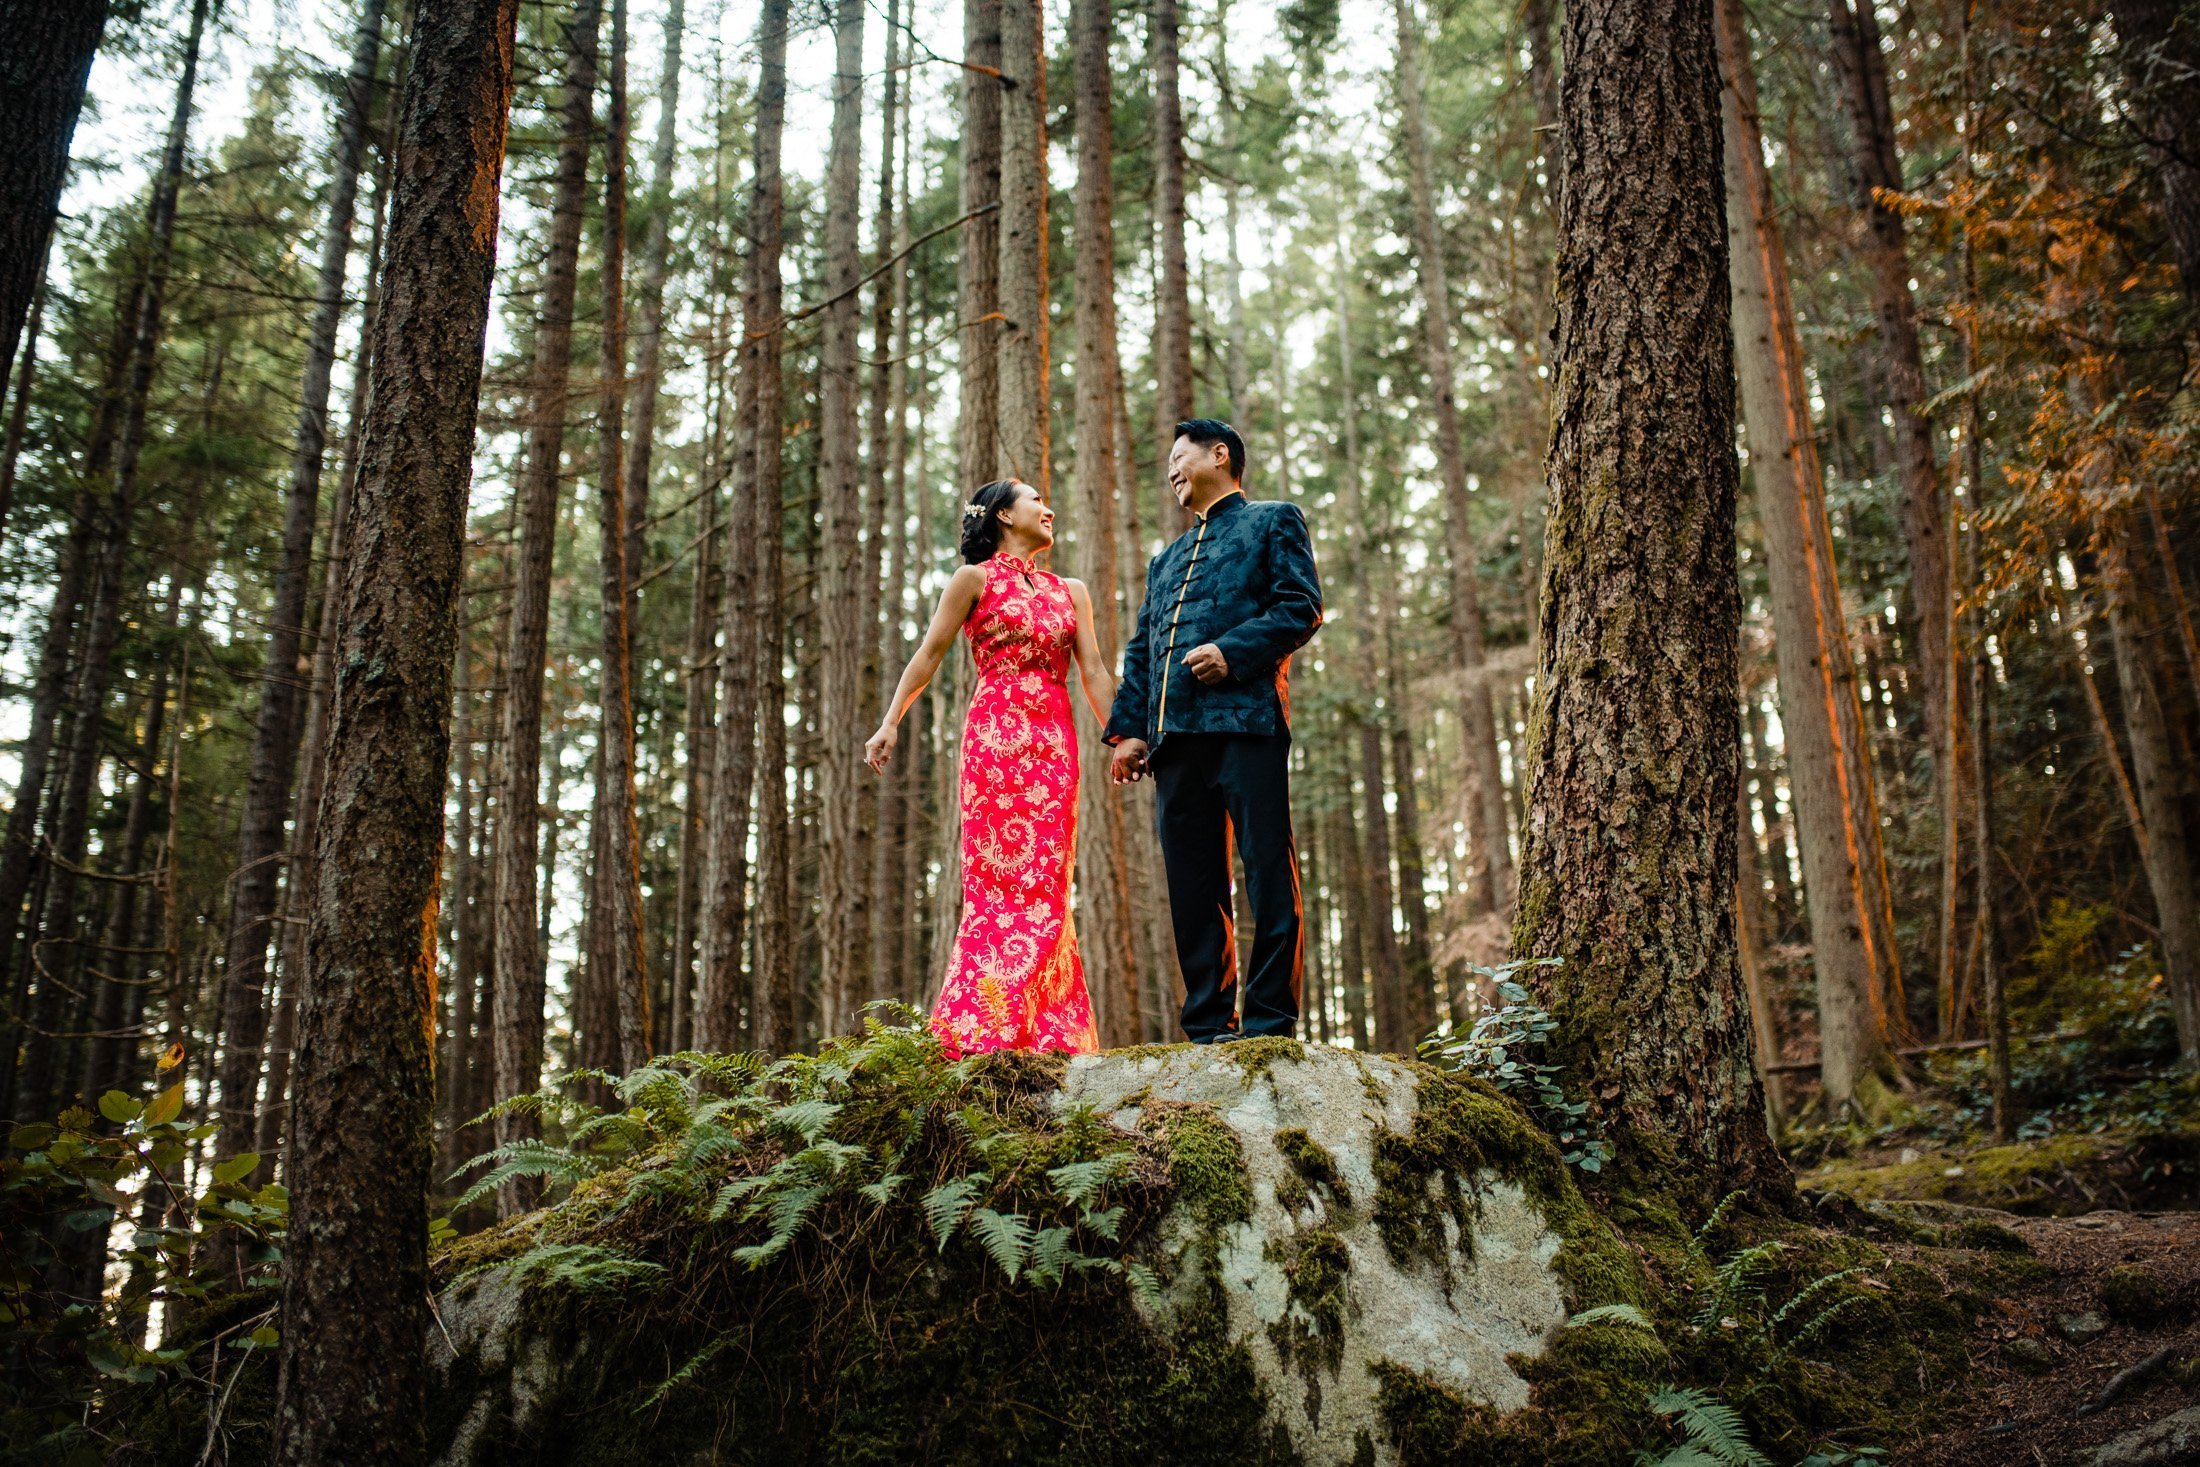 030 - wedding photos forest vancouver